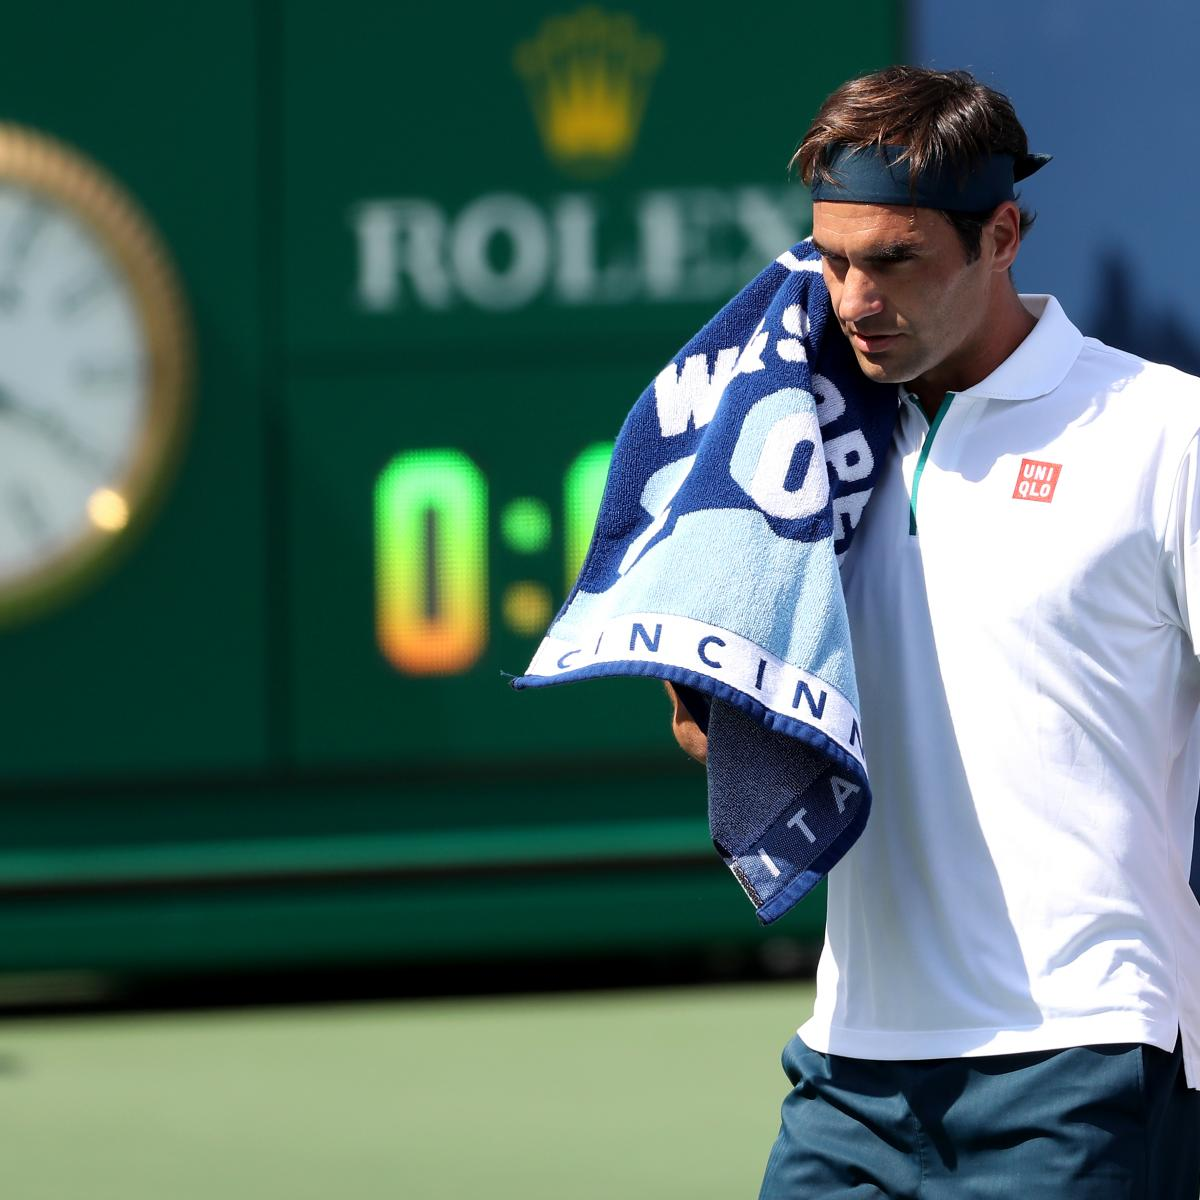 Western and Southern Open 2019: Roger Federer Upset in Thursday's ...